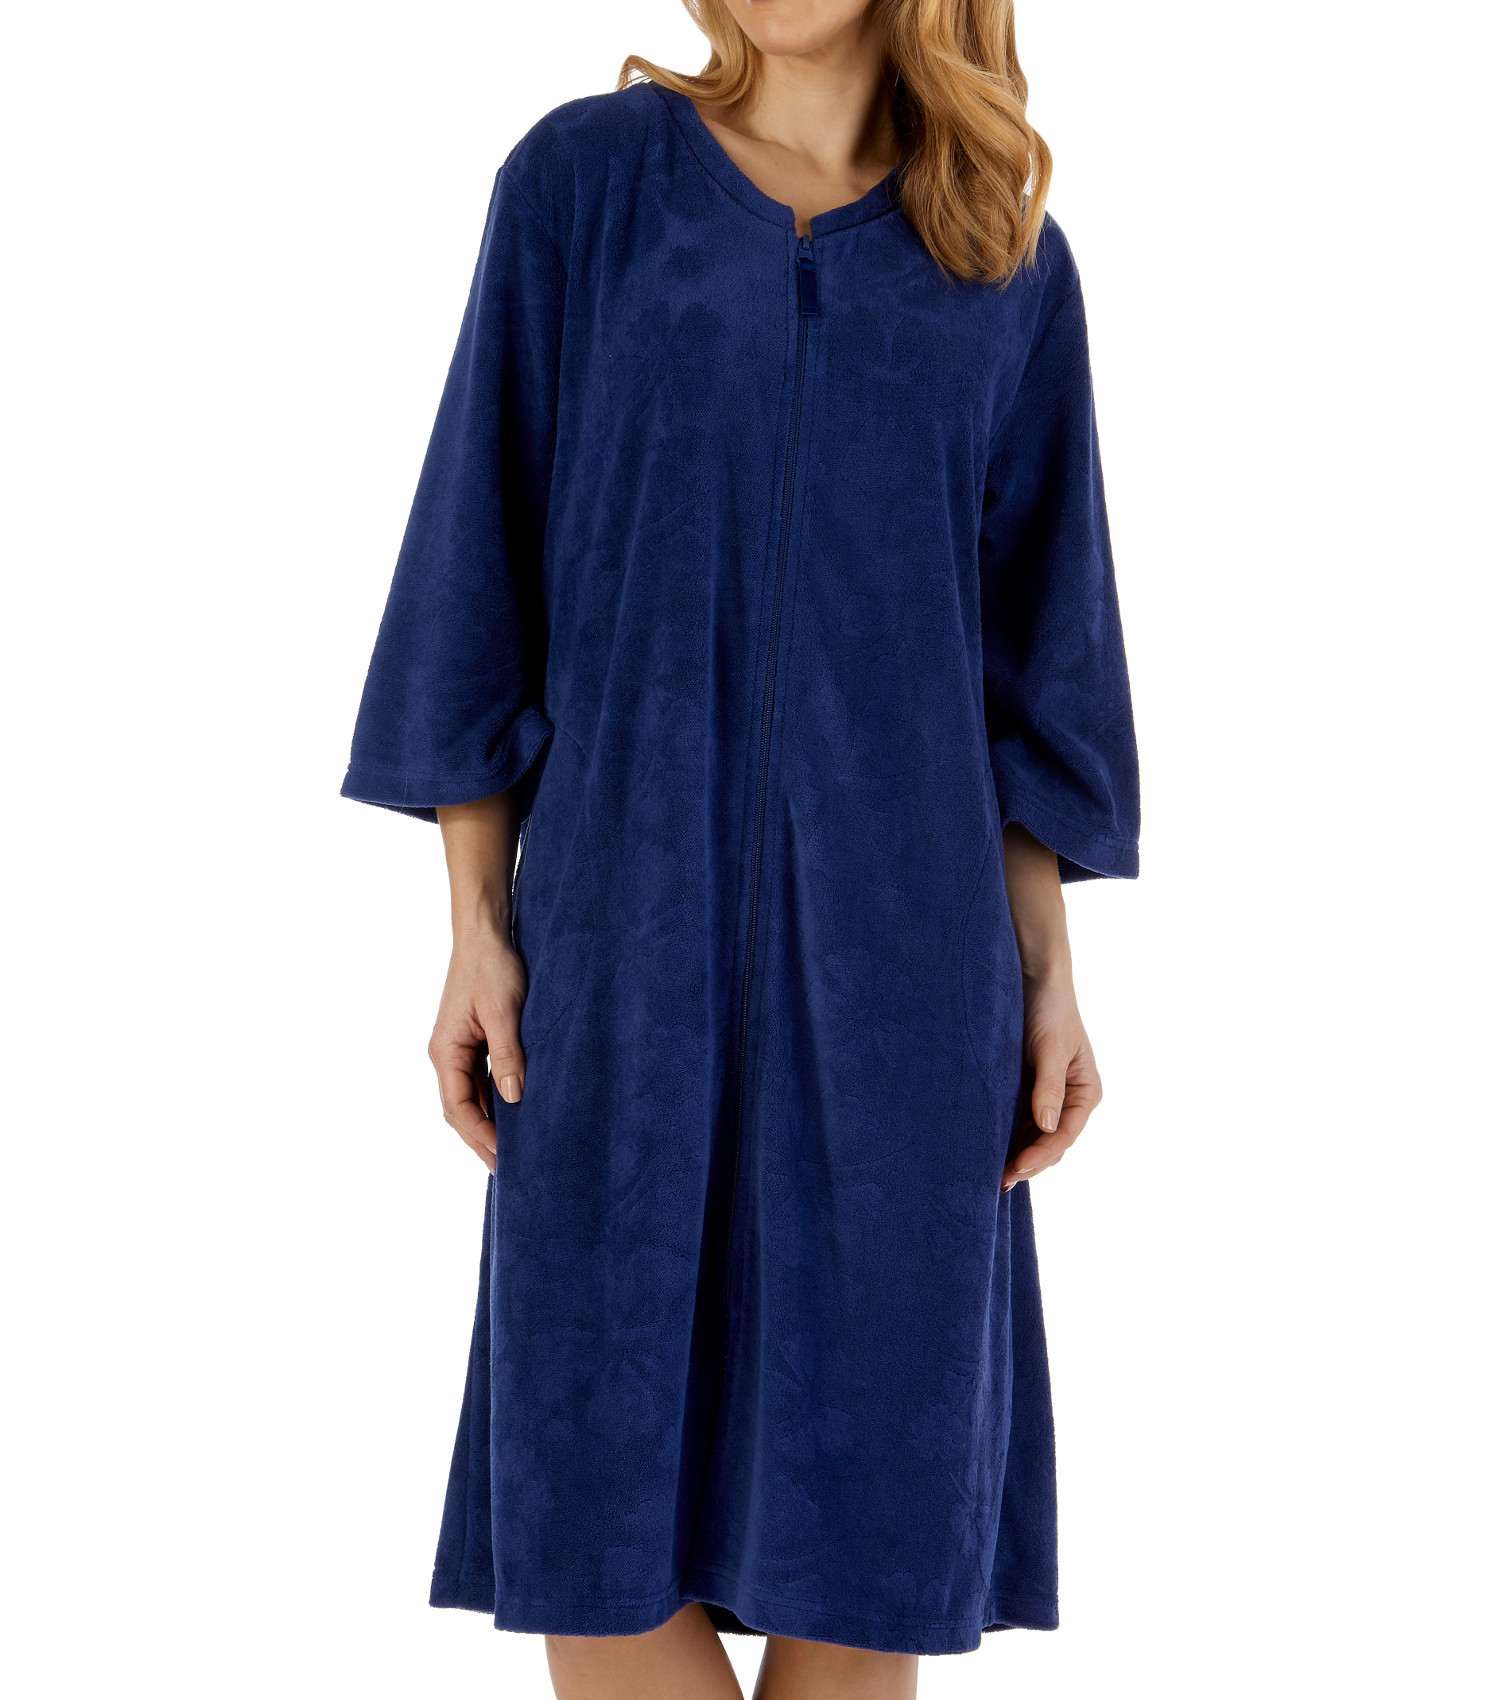 Navy Lilac Slenderella Ladies Floral Embossed 3//4 Sleeve Zip Up Dressing Gown Robe Blue Pink and White